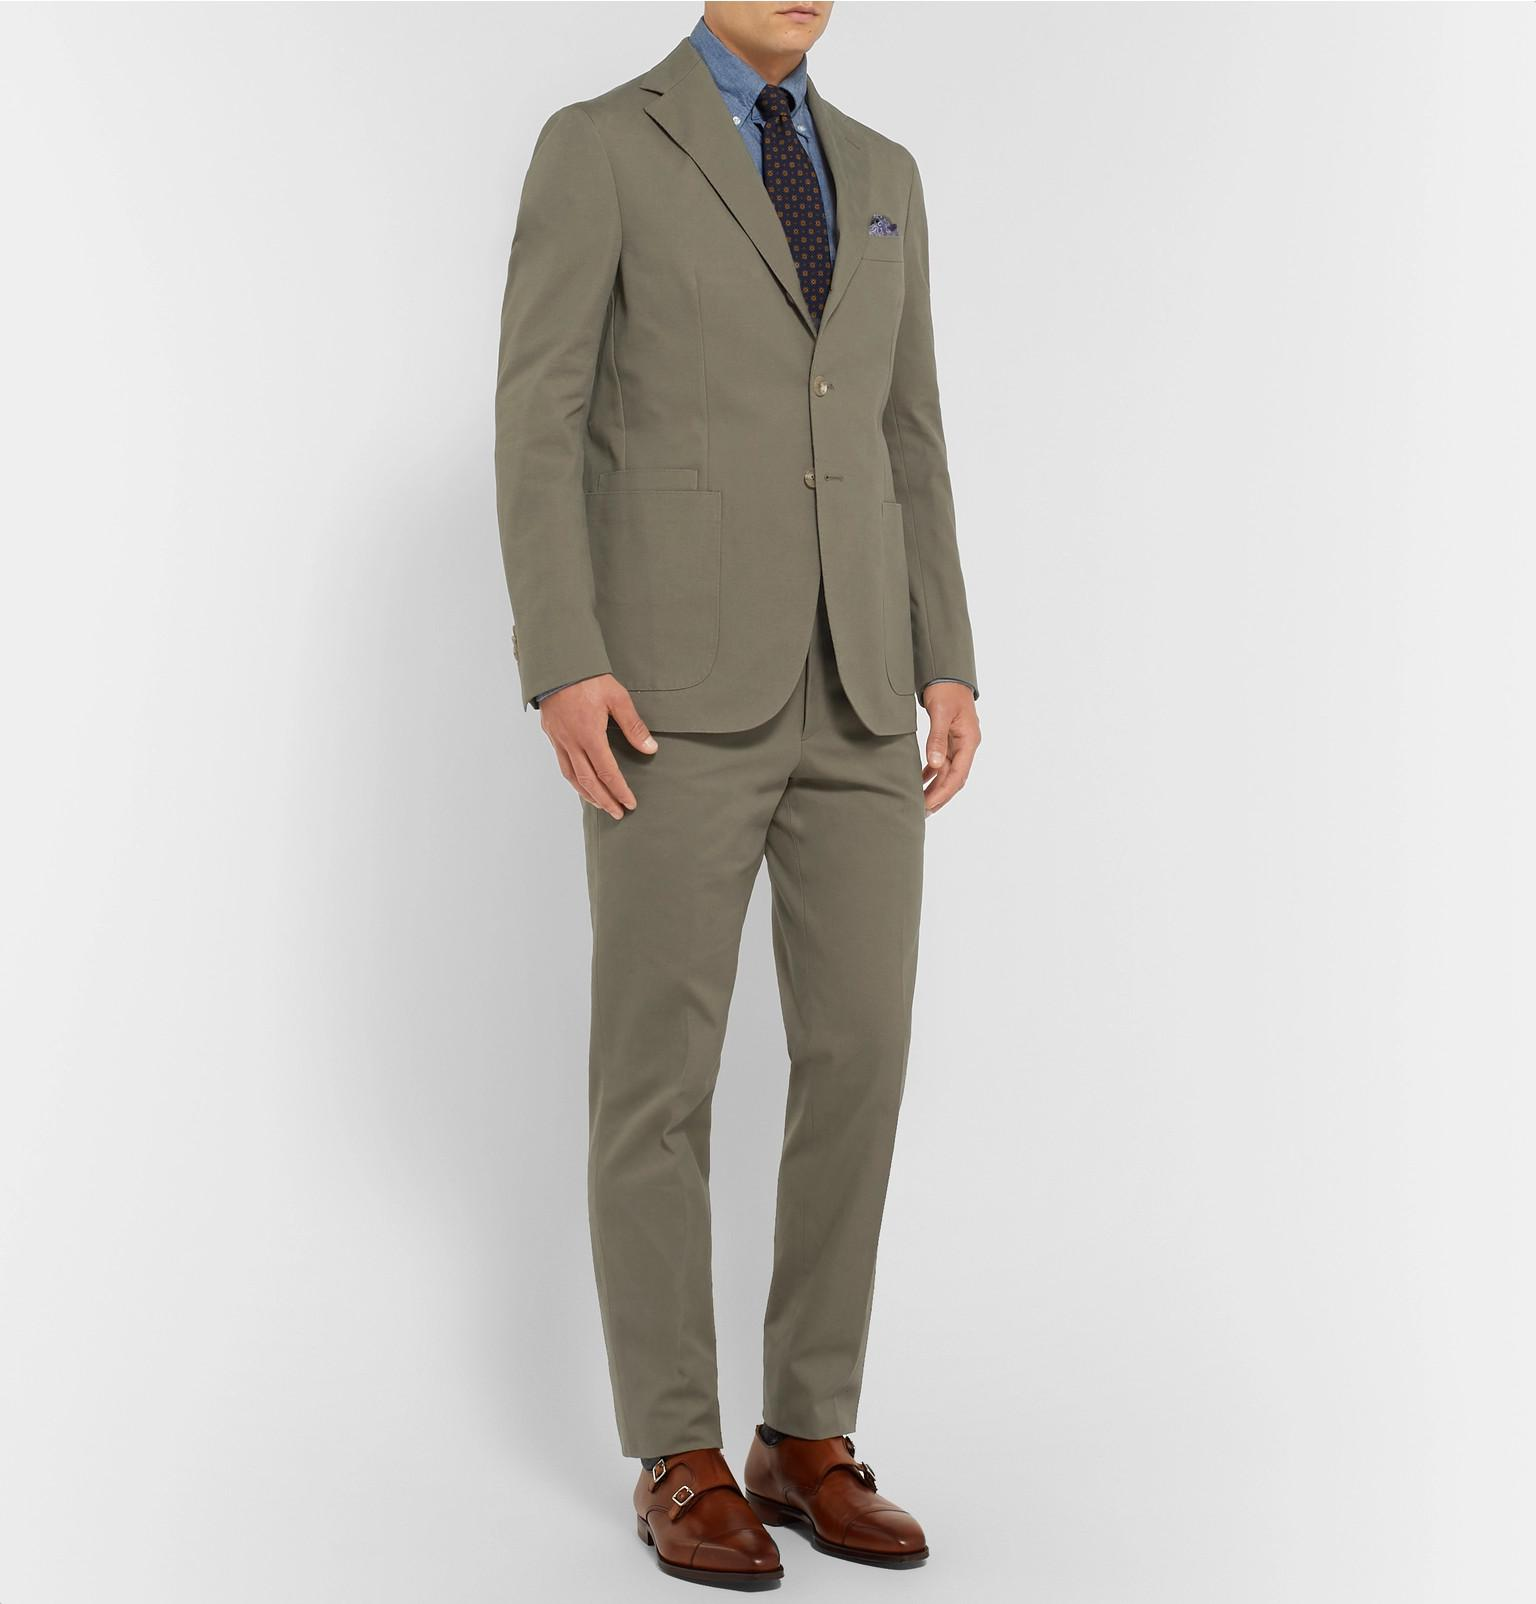 86d26262 drakes-green-Green-Easyday-Cotton-canvas-Suit-Trousers.jpeg